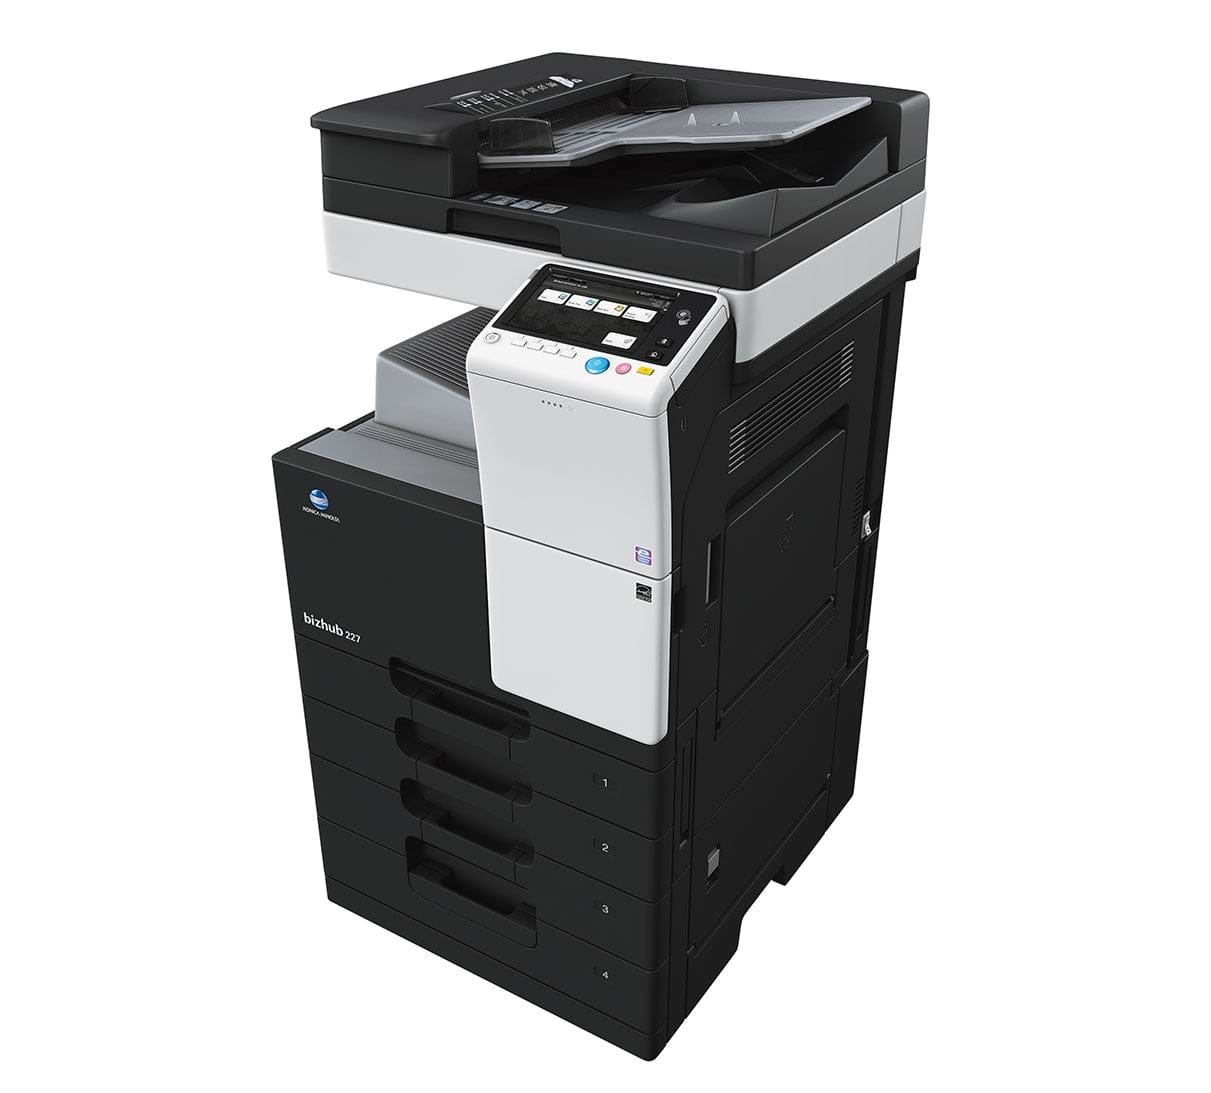 Konica Minolta bizhub 227 office printer